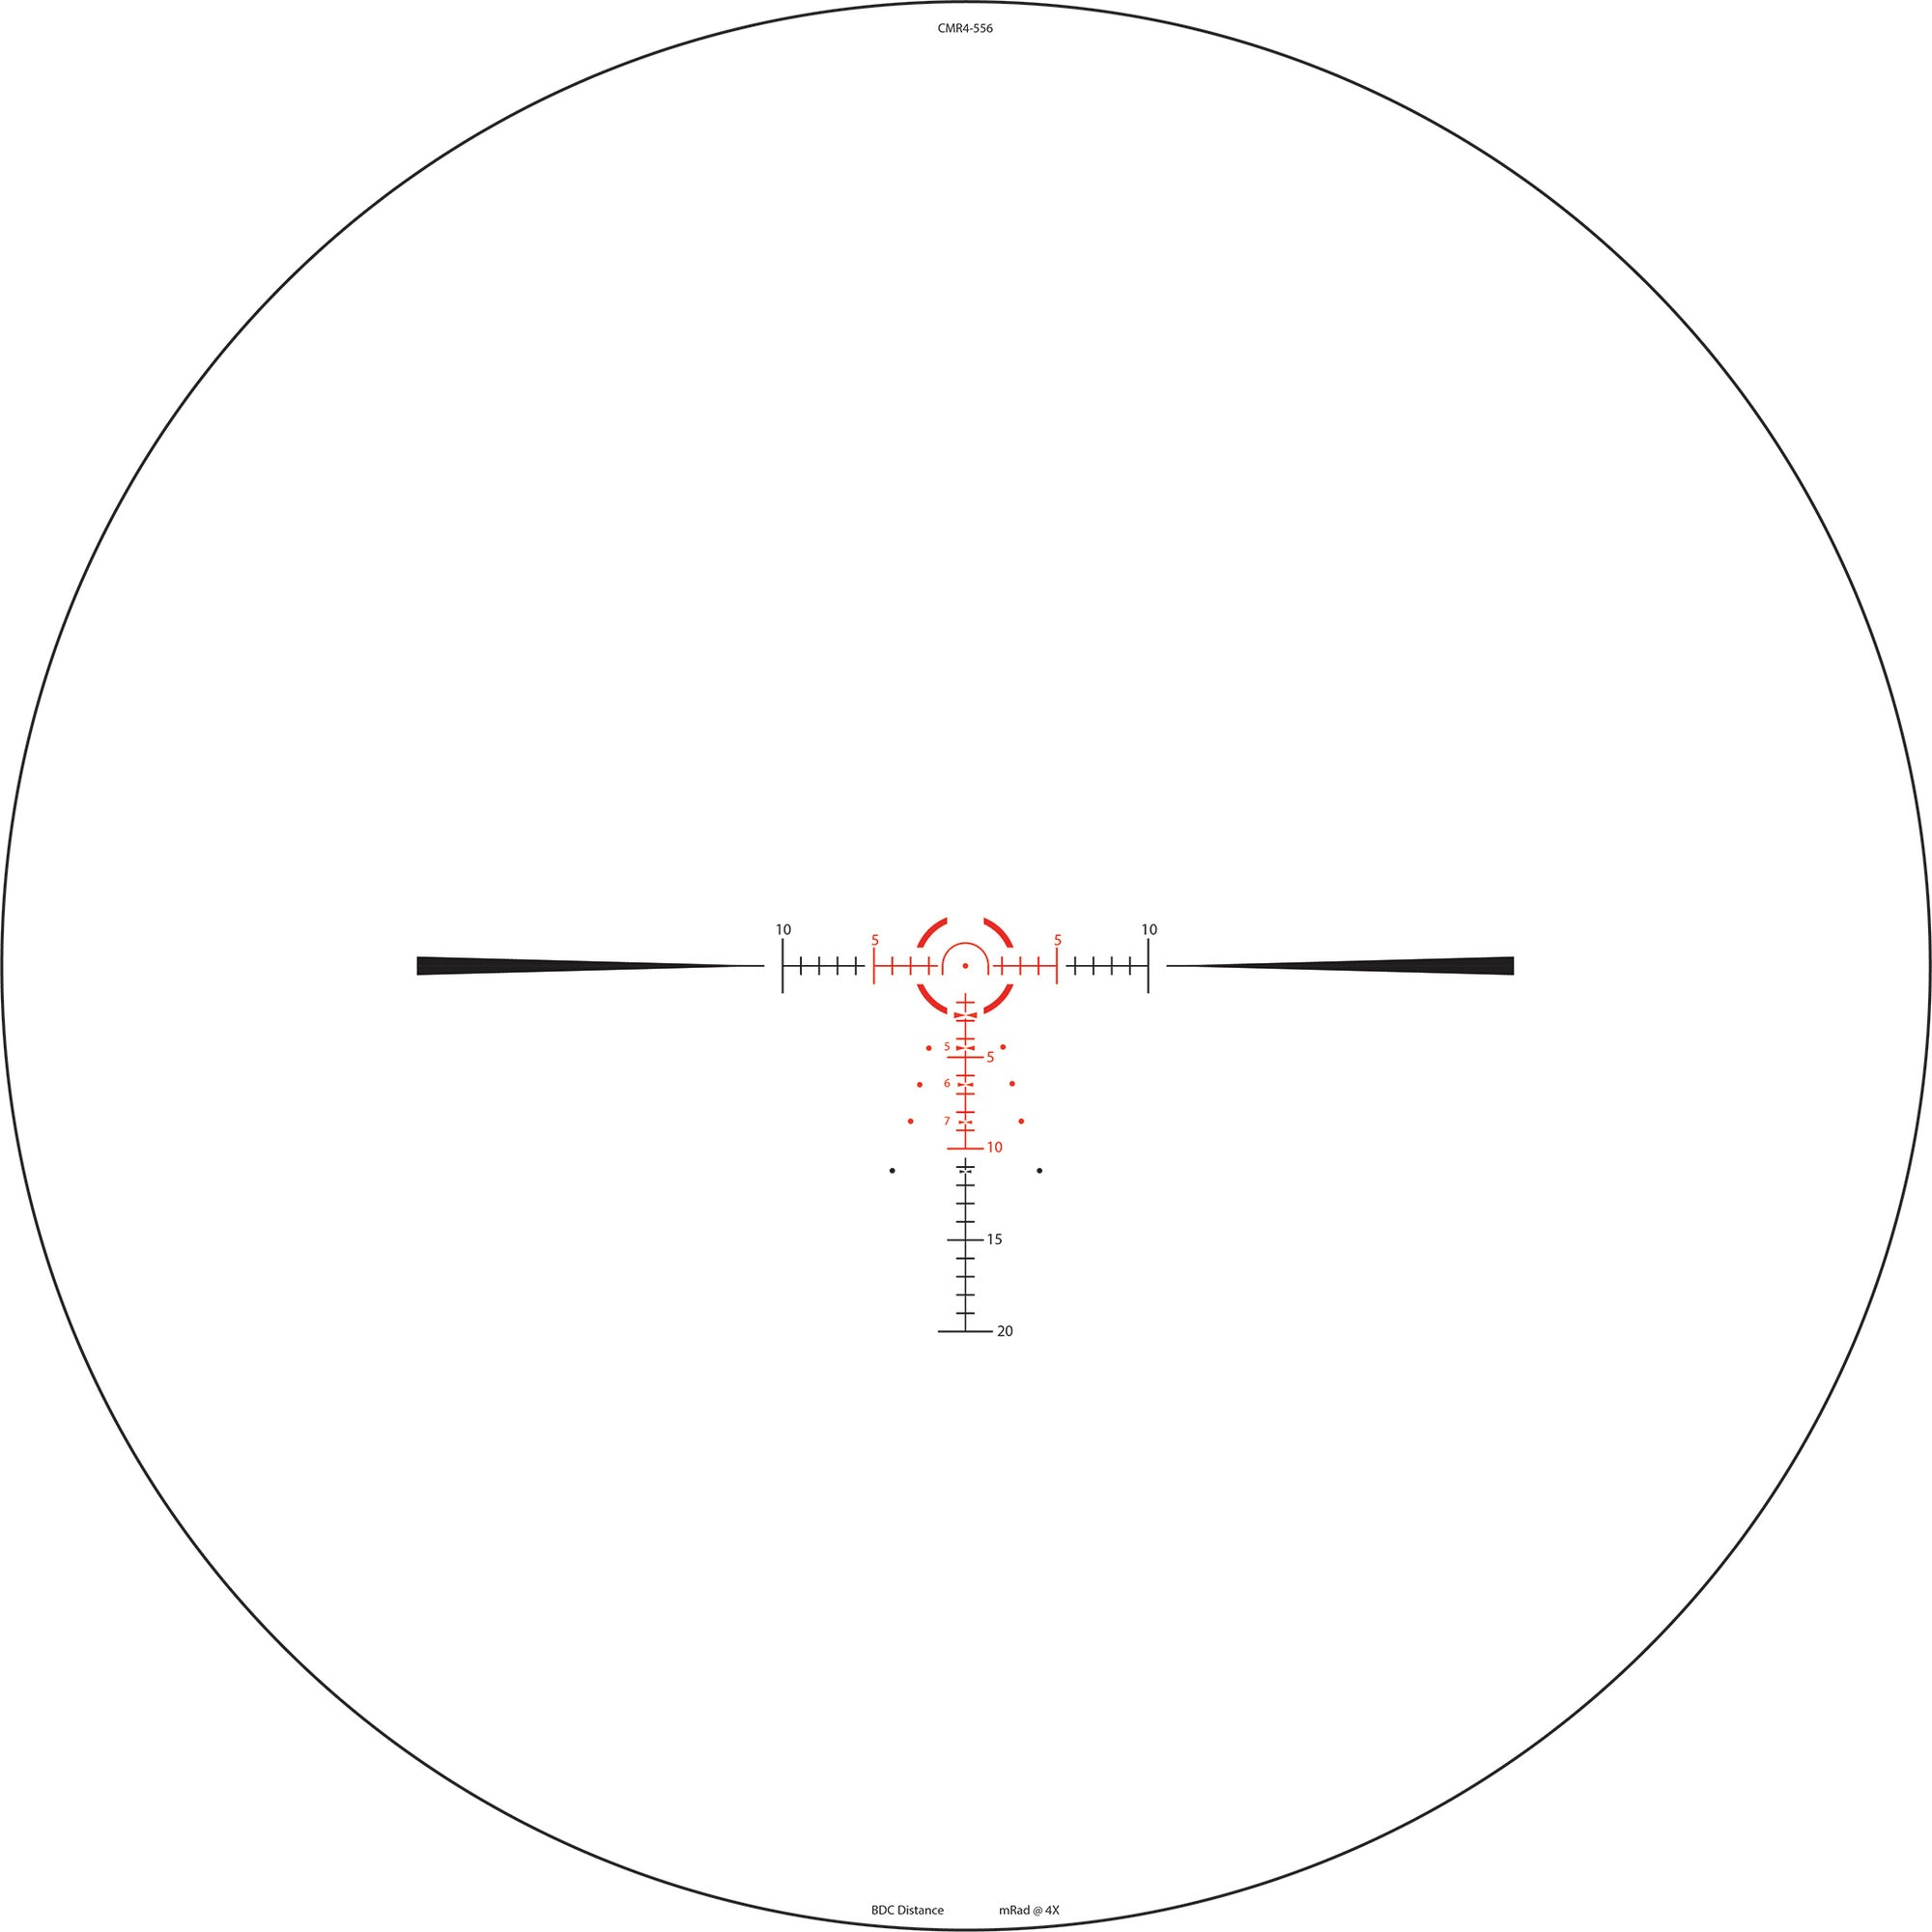 CMR4-556 SFP Reticle